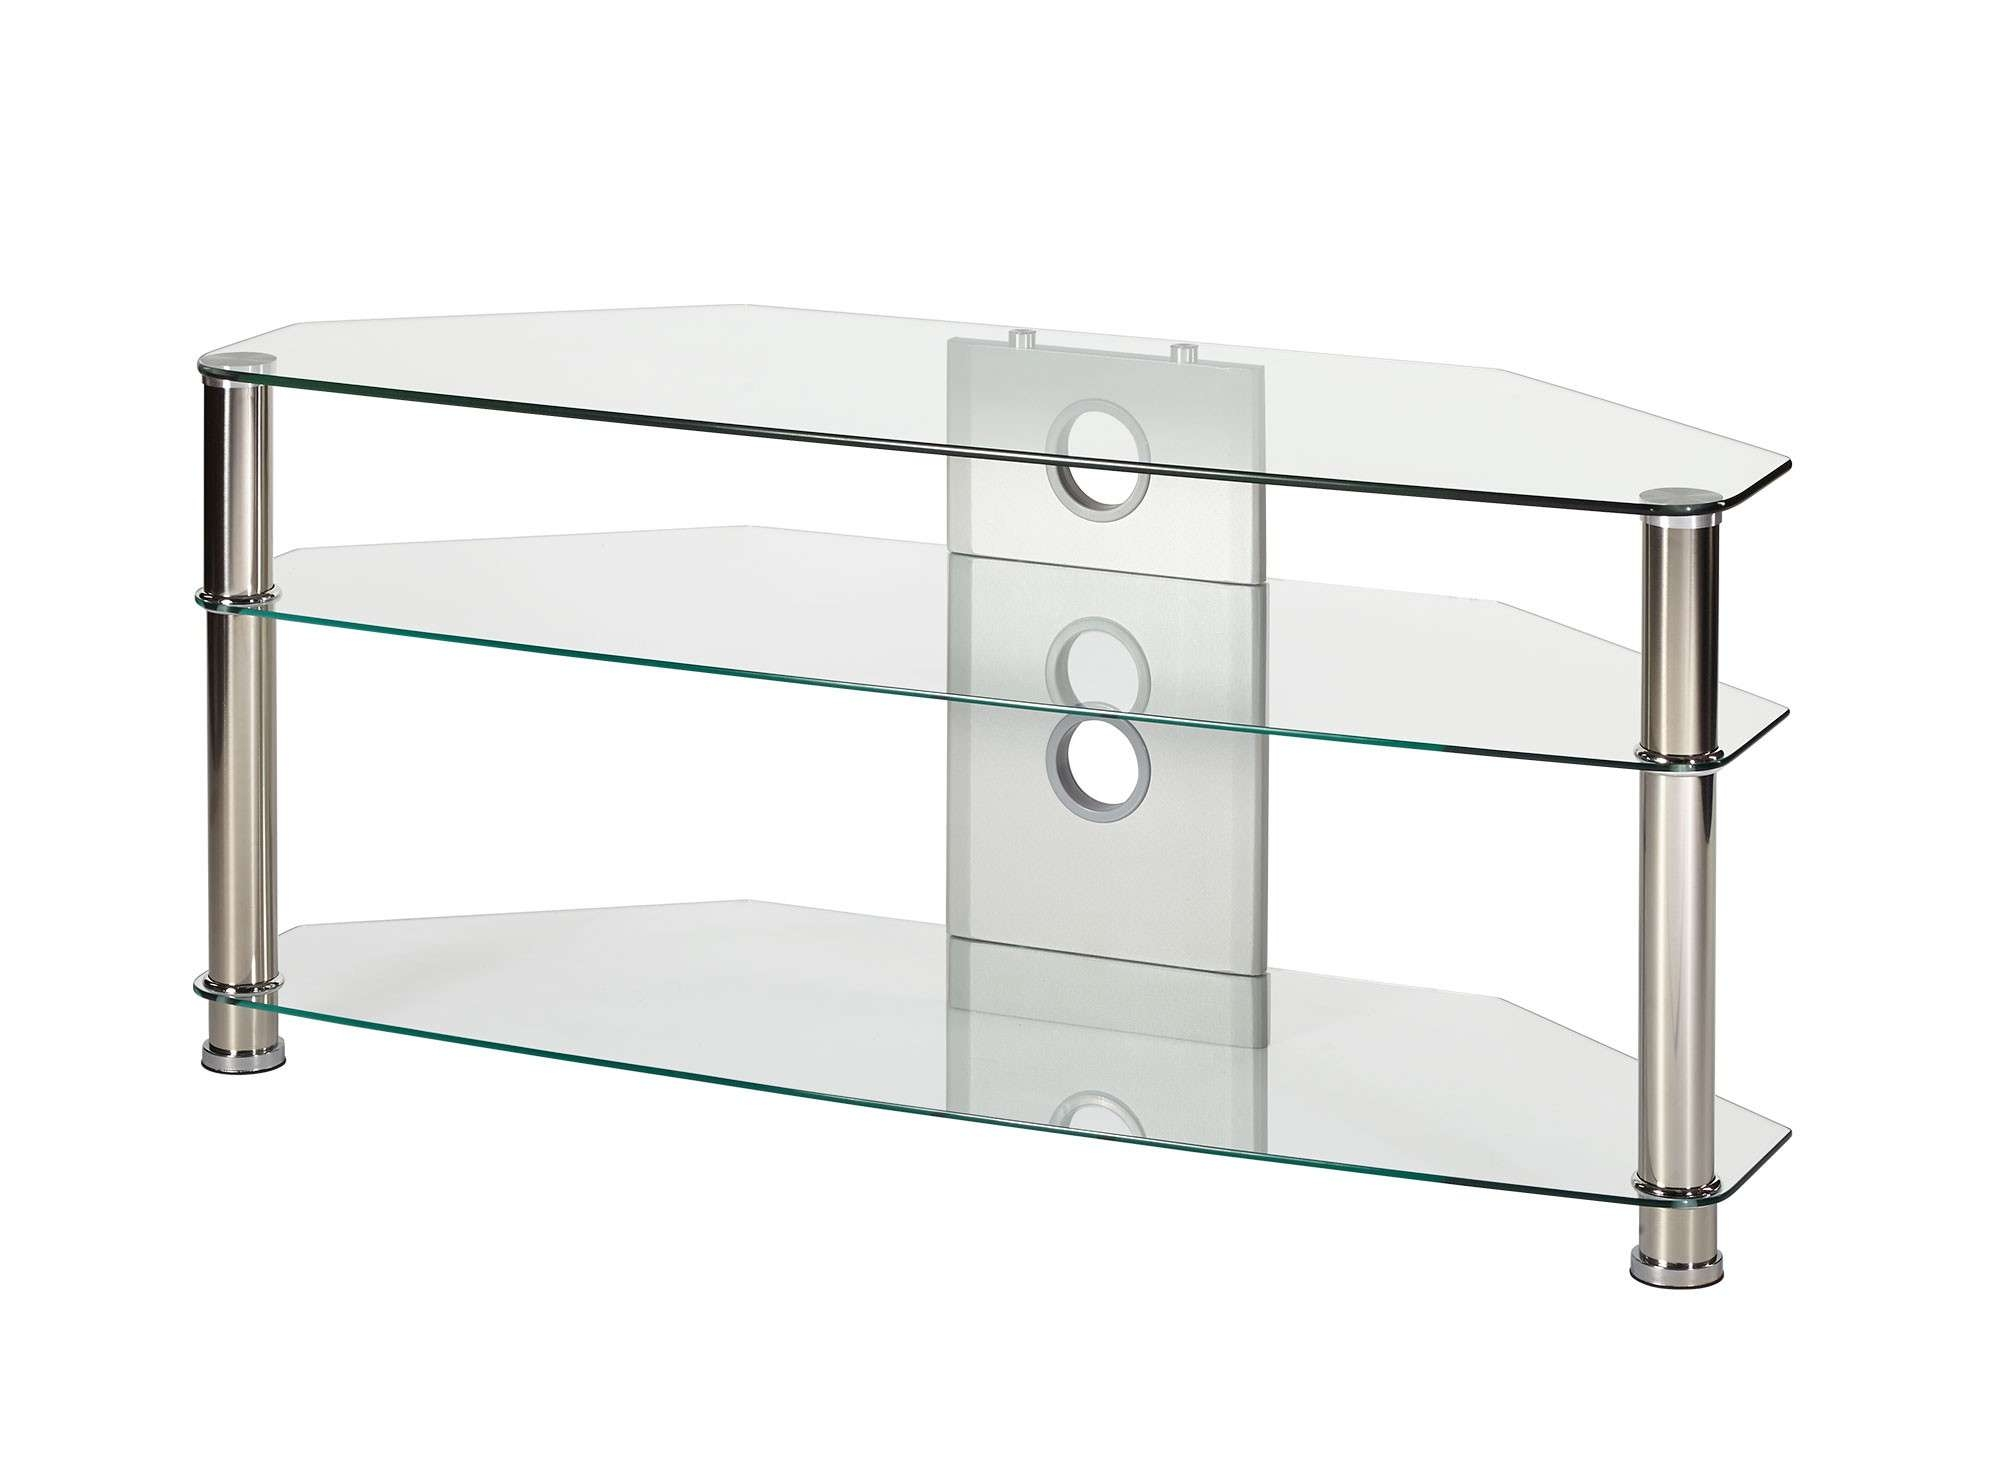 Jet Mmt Cl1150 Clear Glass Tv Stand Stands For Inch Large Corner With Clear Glass Tv Stands (View 12 of 15)